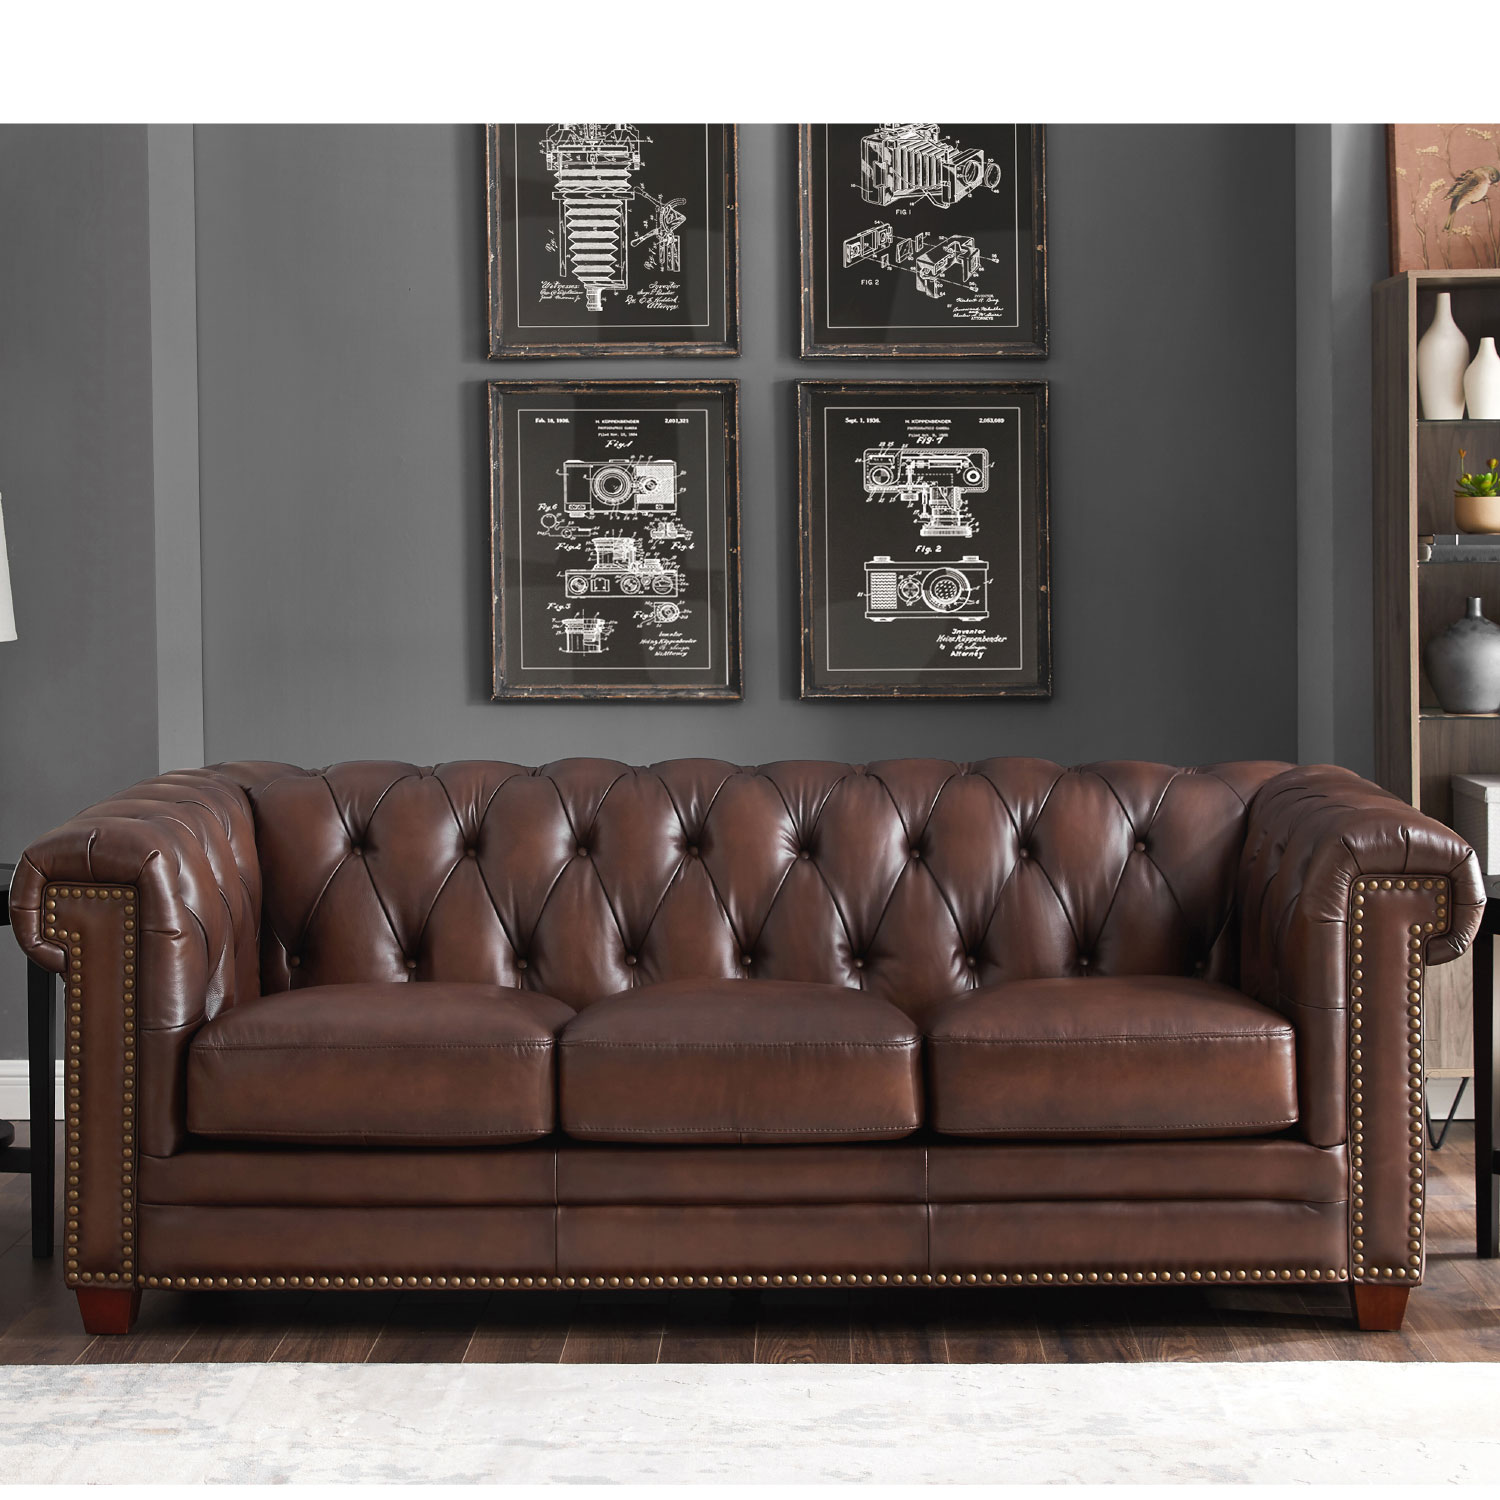 - Hydeline Stanwood-SO Stanwood Leather Sofa In Tufted Brown W